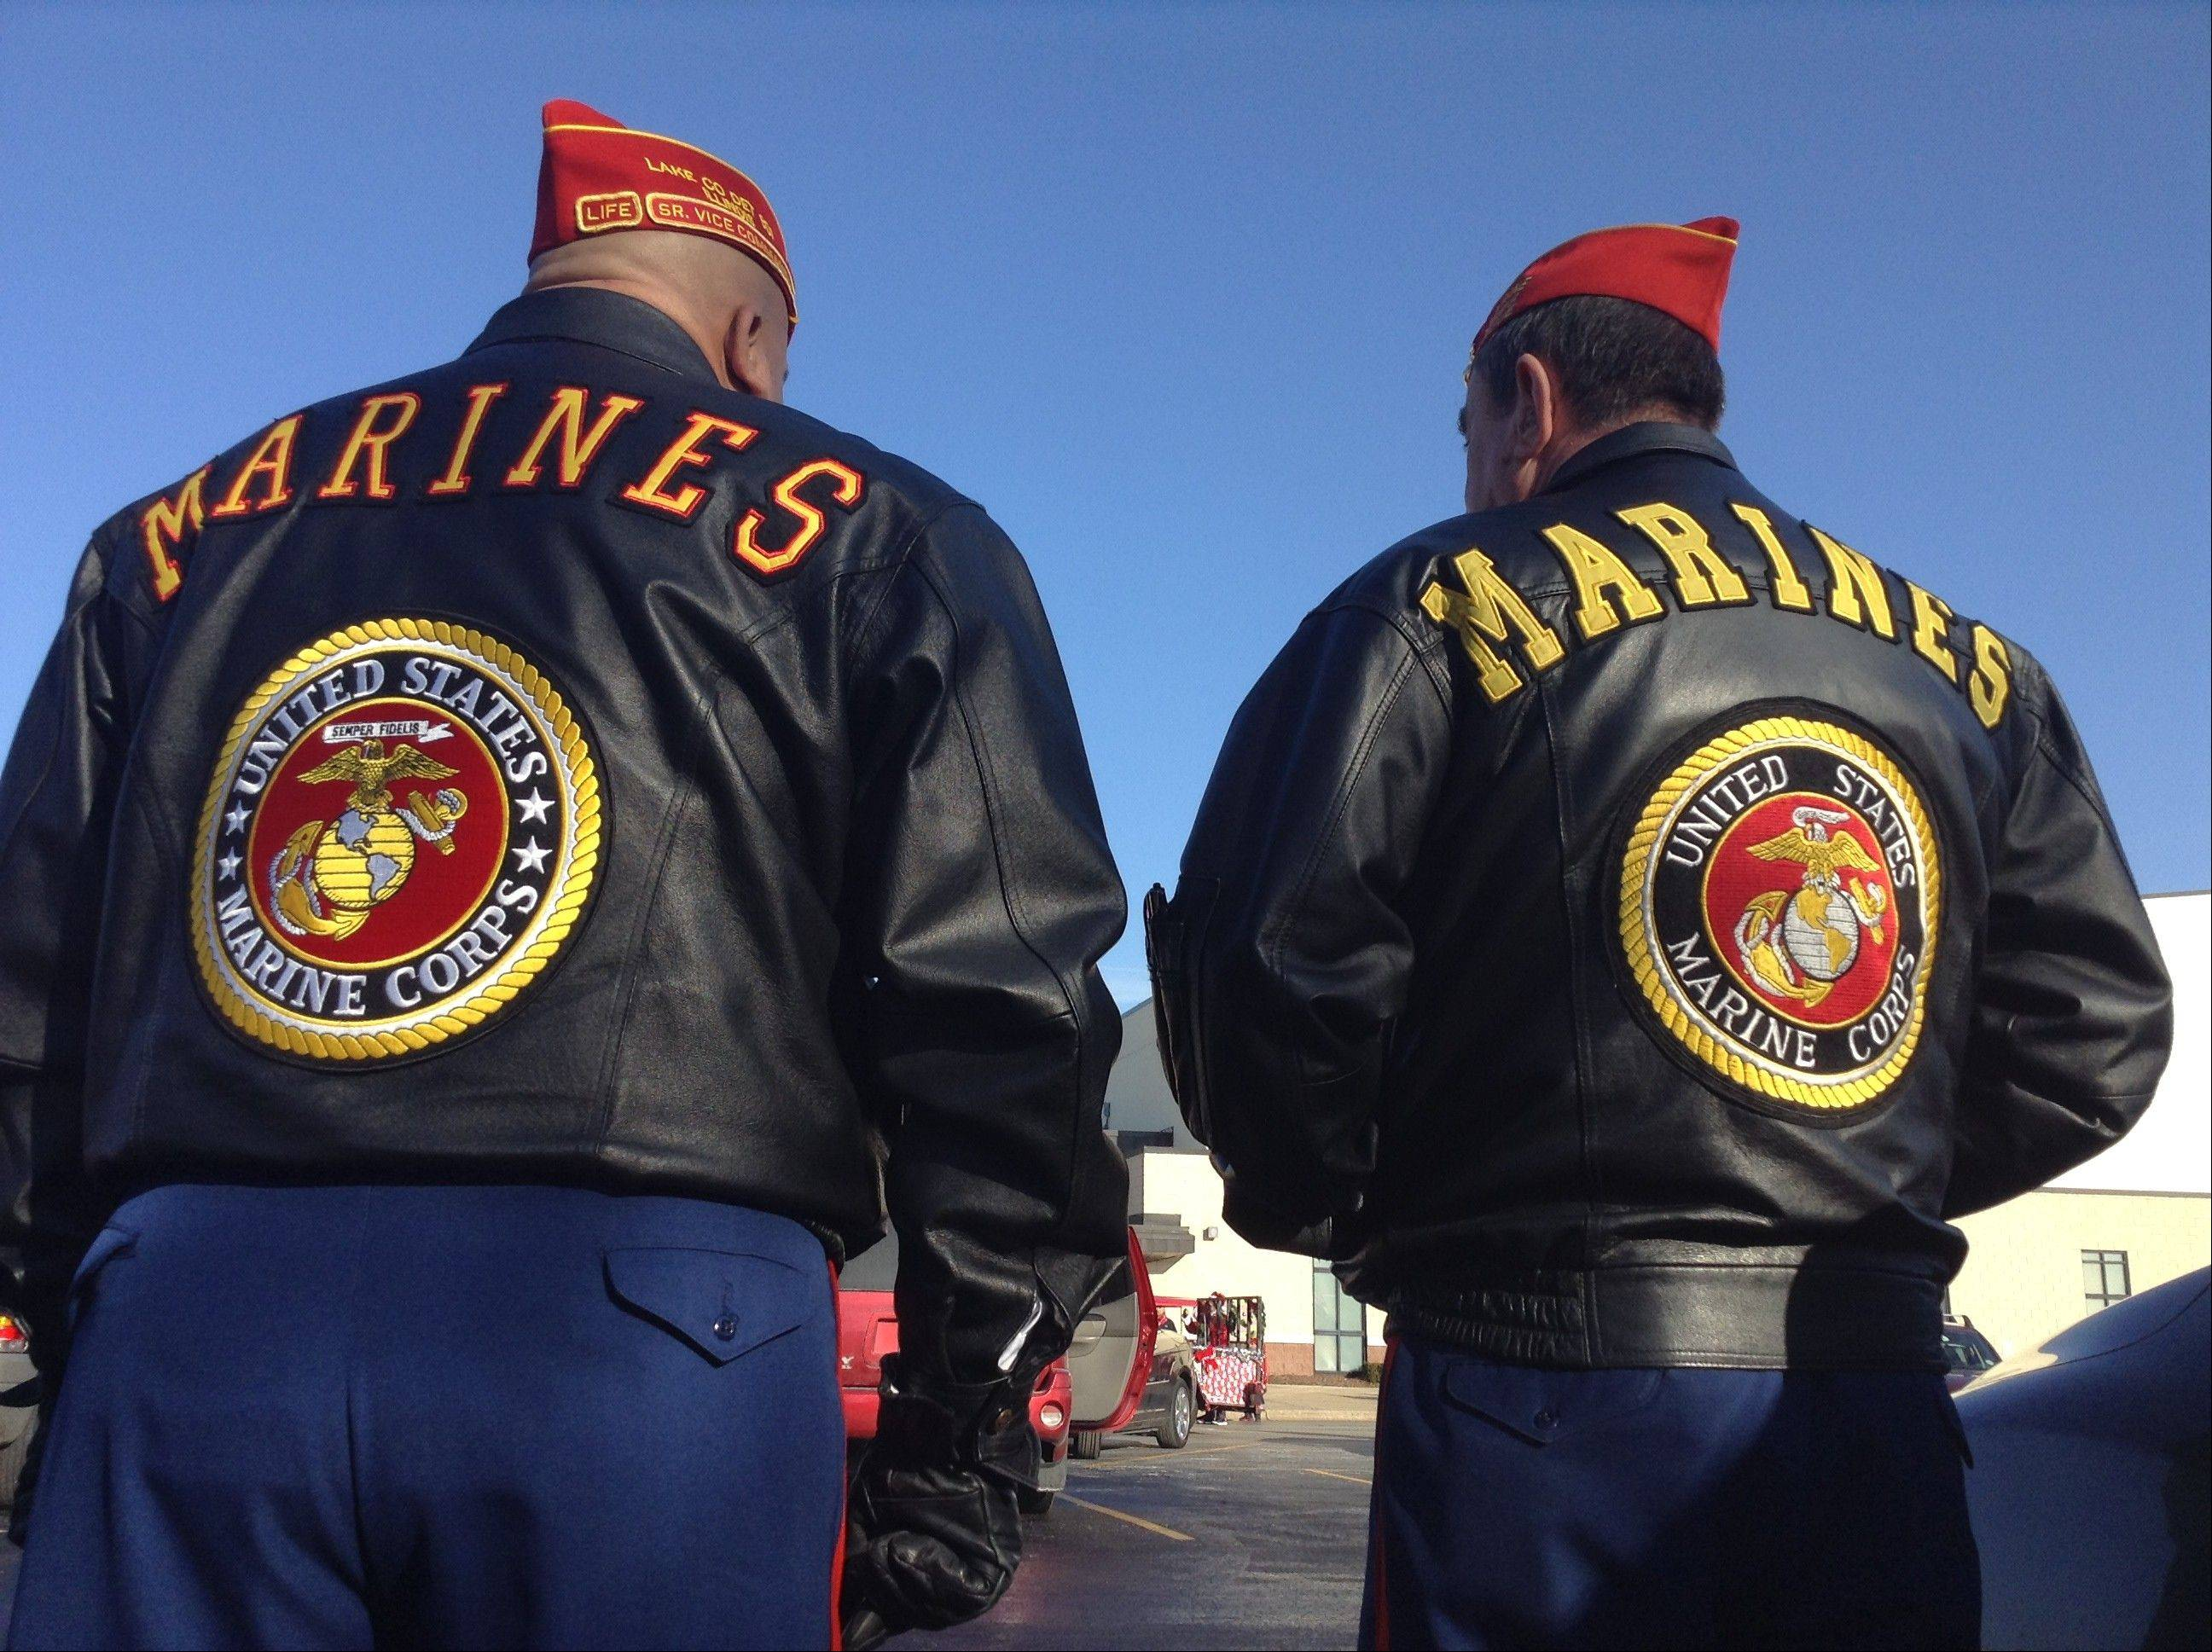 Russell Lissau/rlissau@dailyherald.com Retired Marines Roy Cuevos, left, and Toy Keeton wait to march in the parade as part of the color guard.